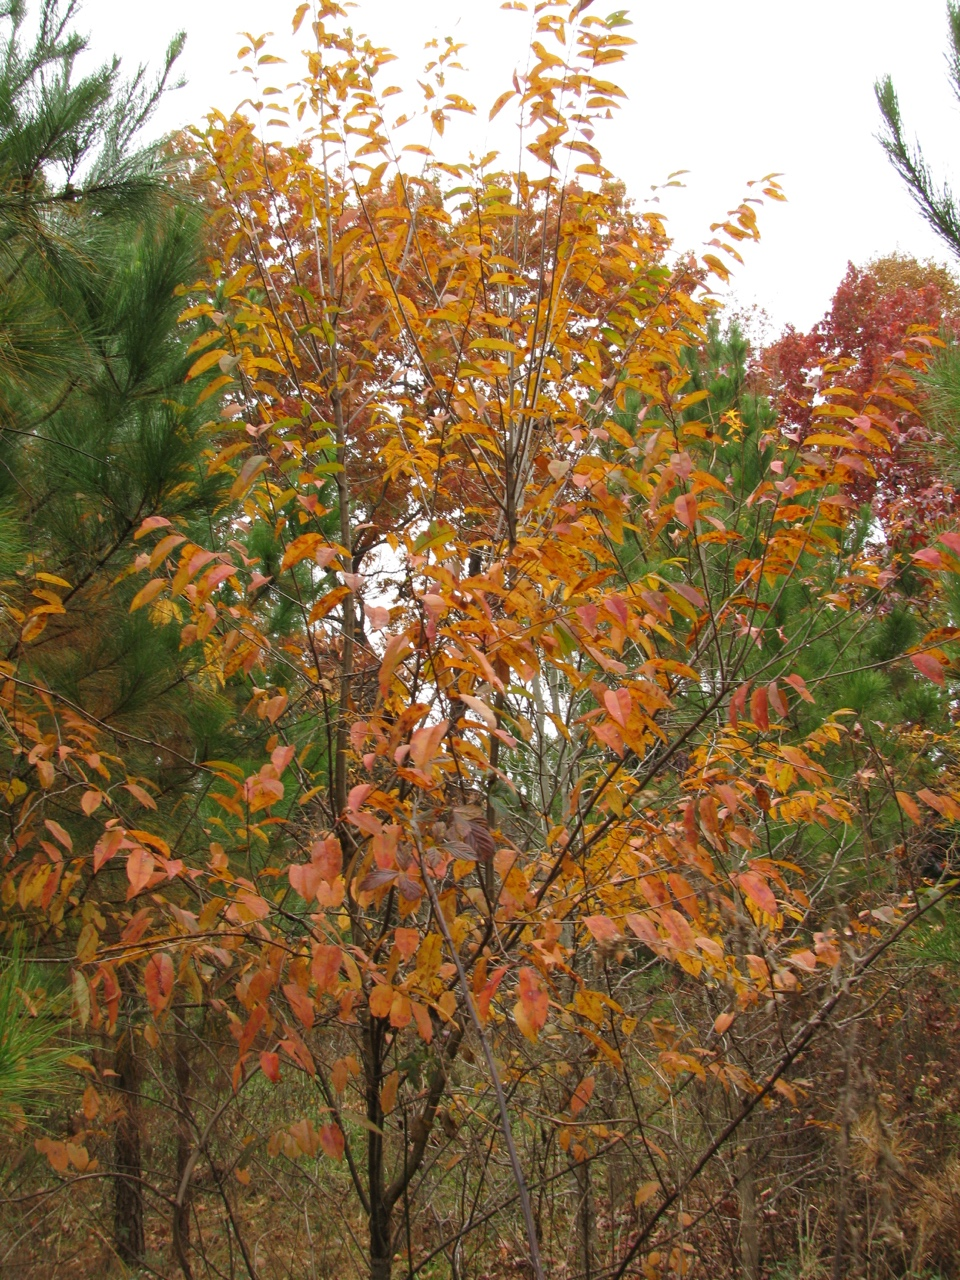 The Scientific Name is Diospyros virginiana. You will likely hear them called Persimmon, Possum Apple, Possumwood. This picture shows the Nice fall color of Diospyros virginiana